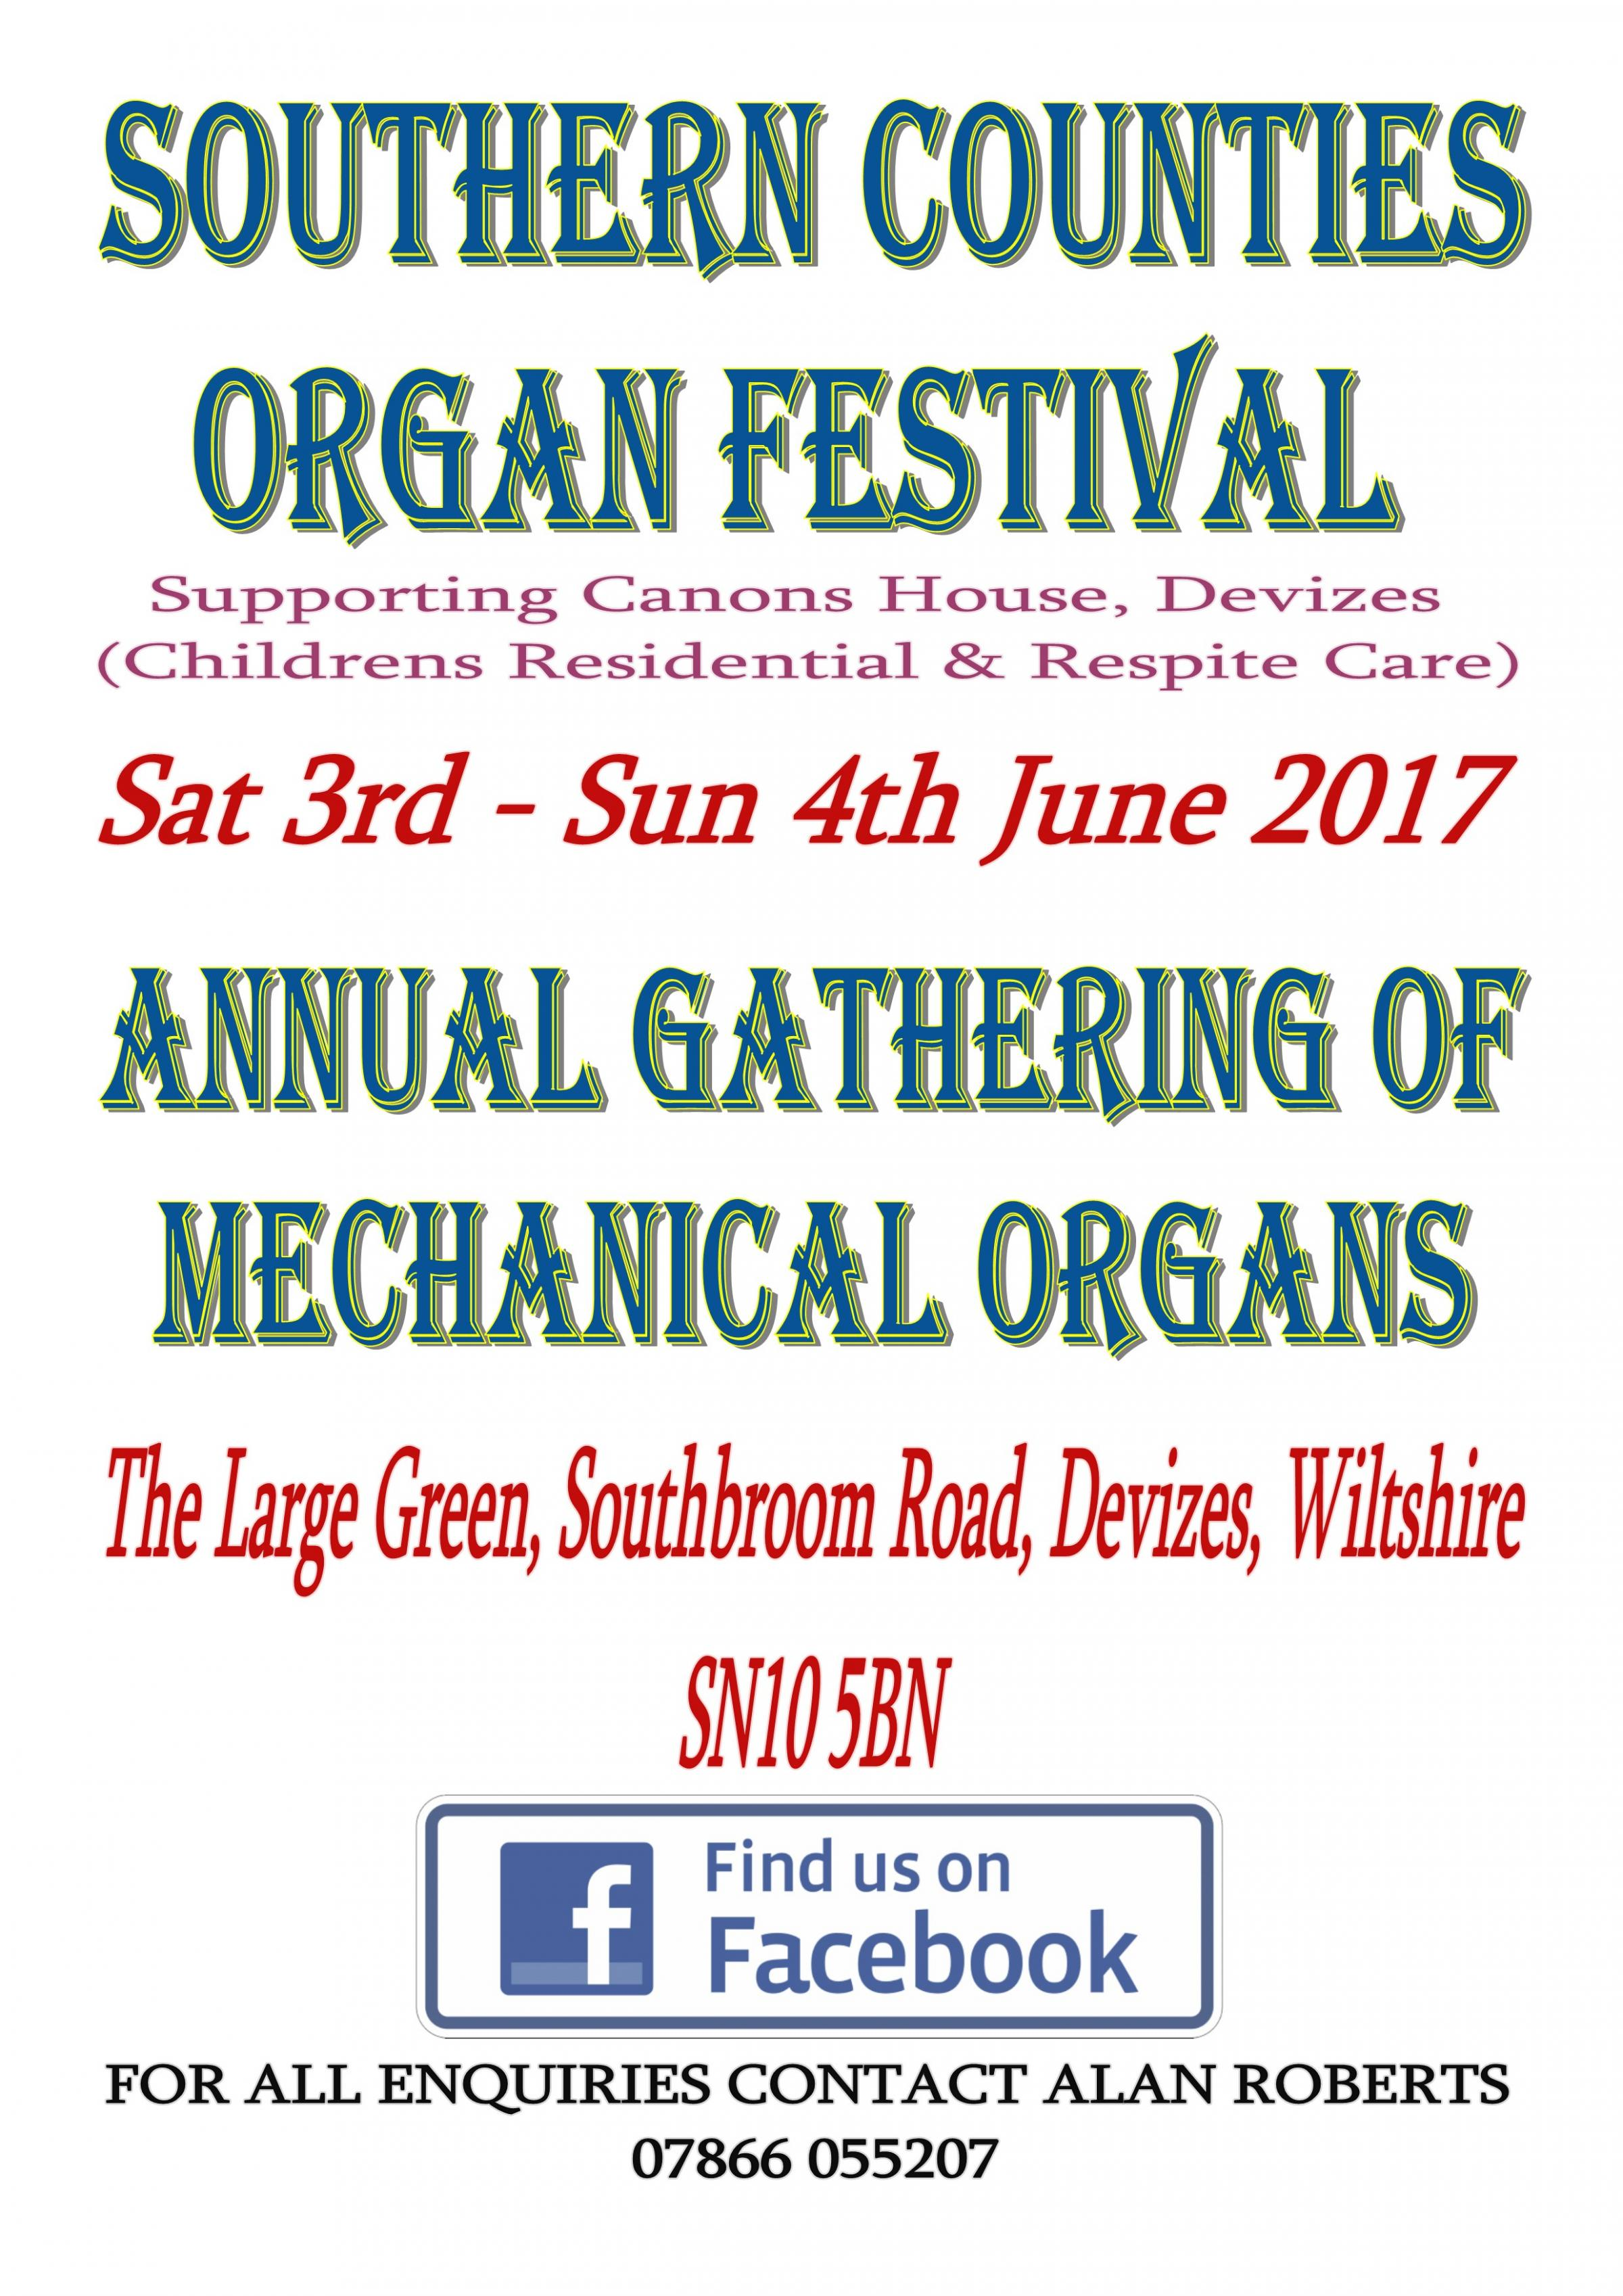 Southern Counties Organ Festival